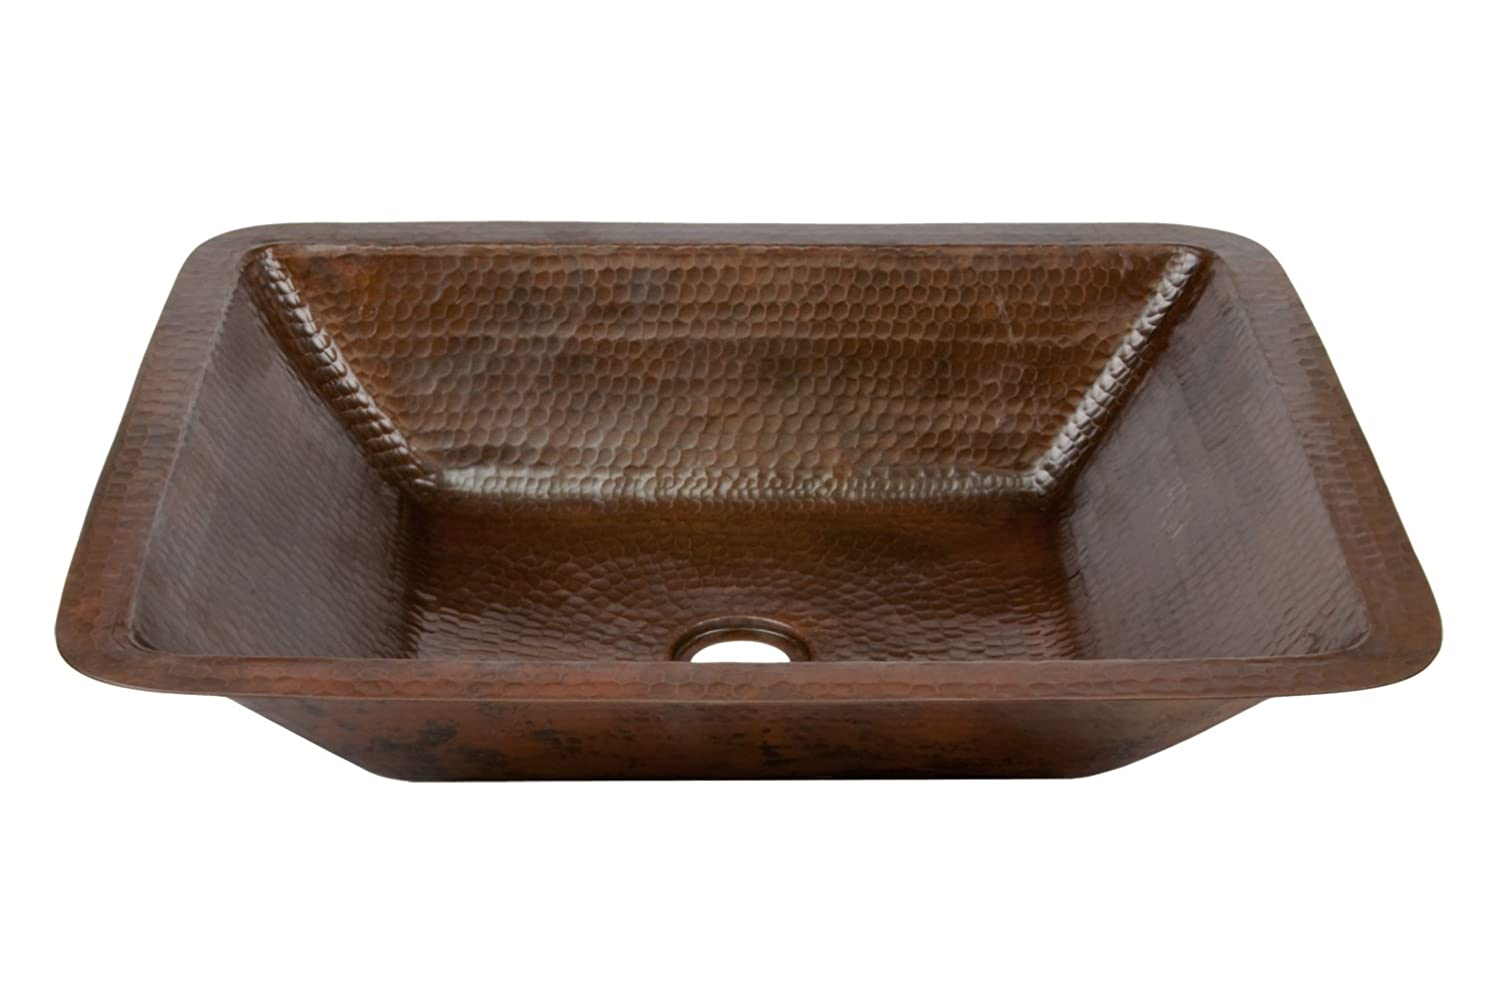 Premier Copper Products LREC19DB Hammered Copper Bathroom Sink, Oil ...